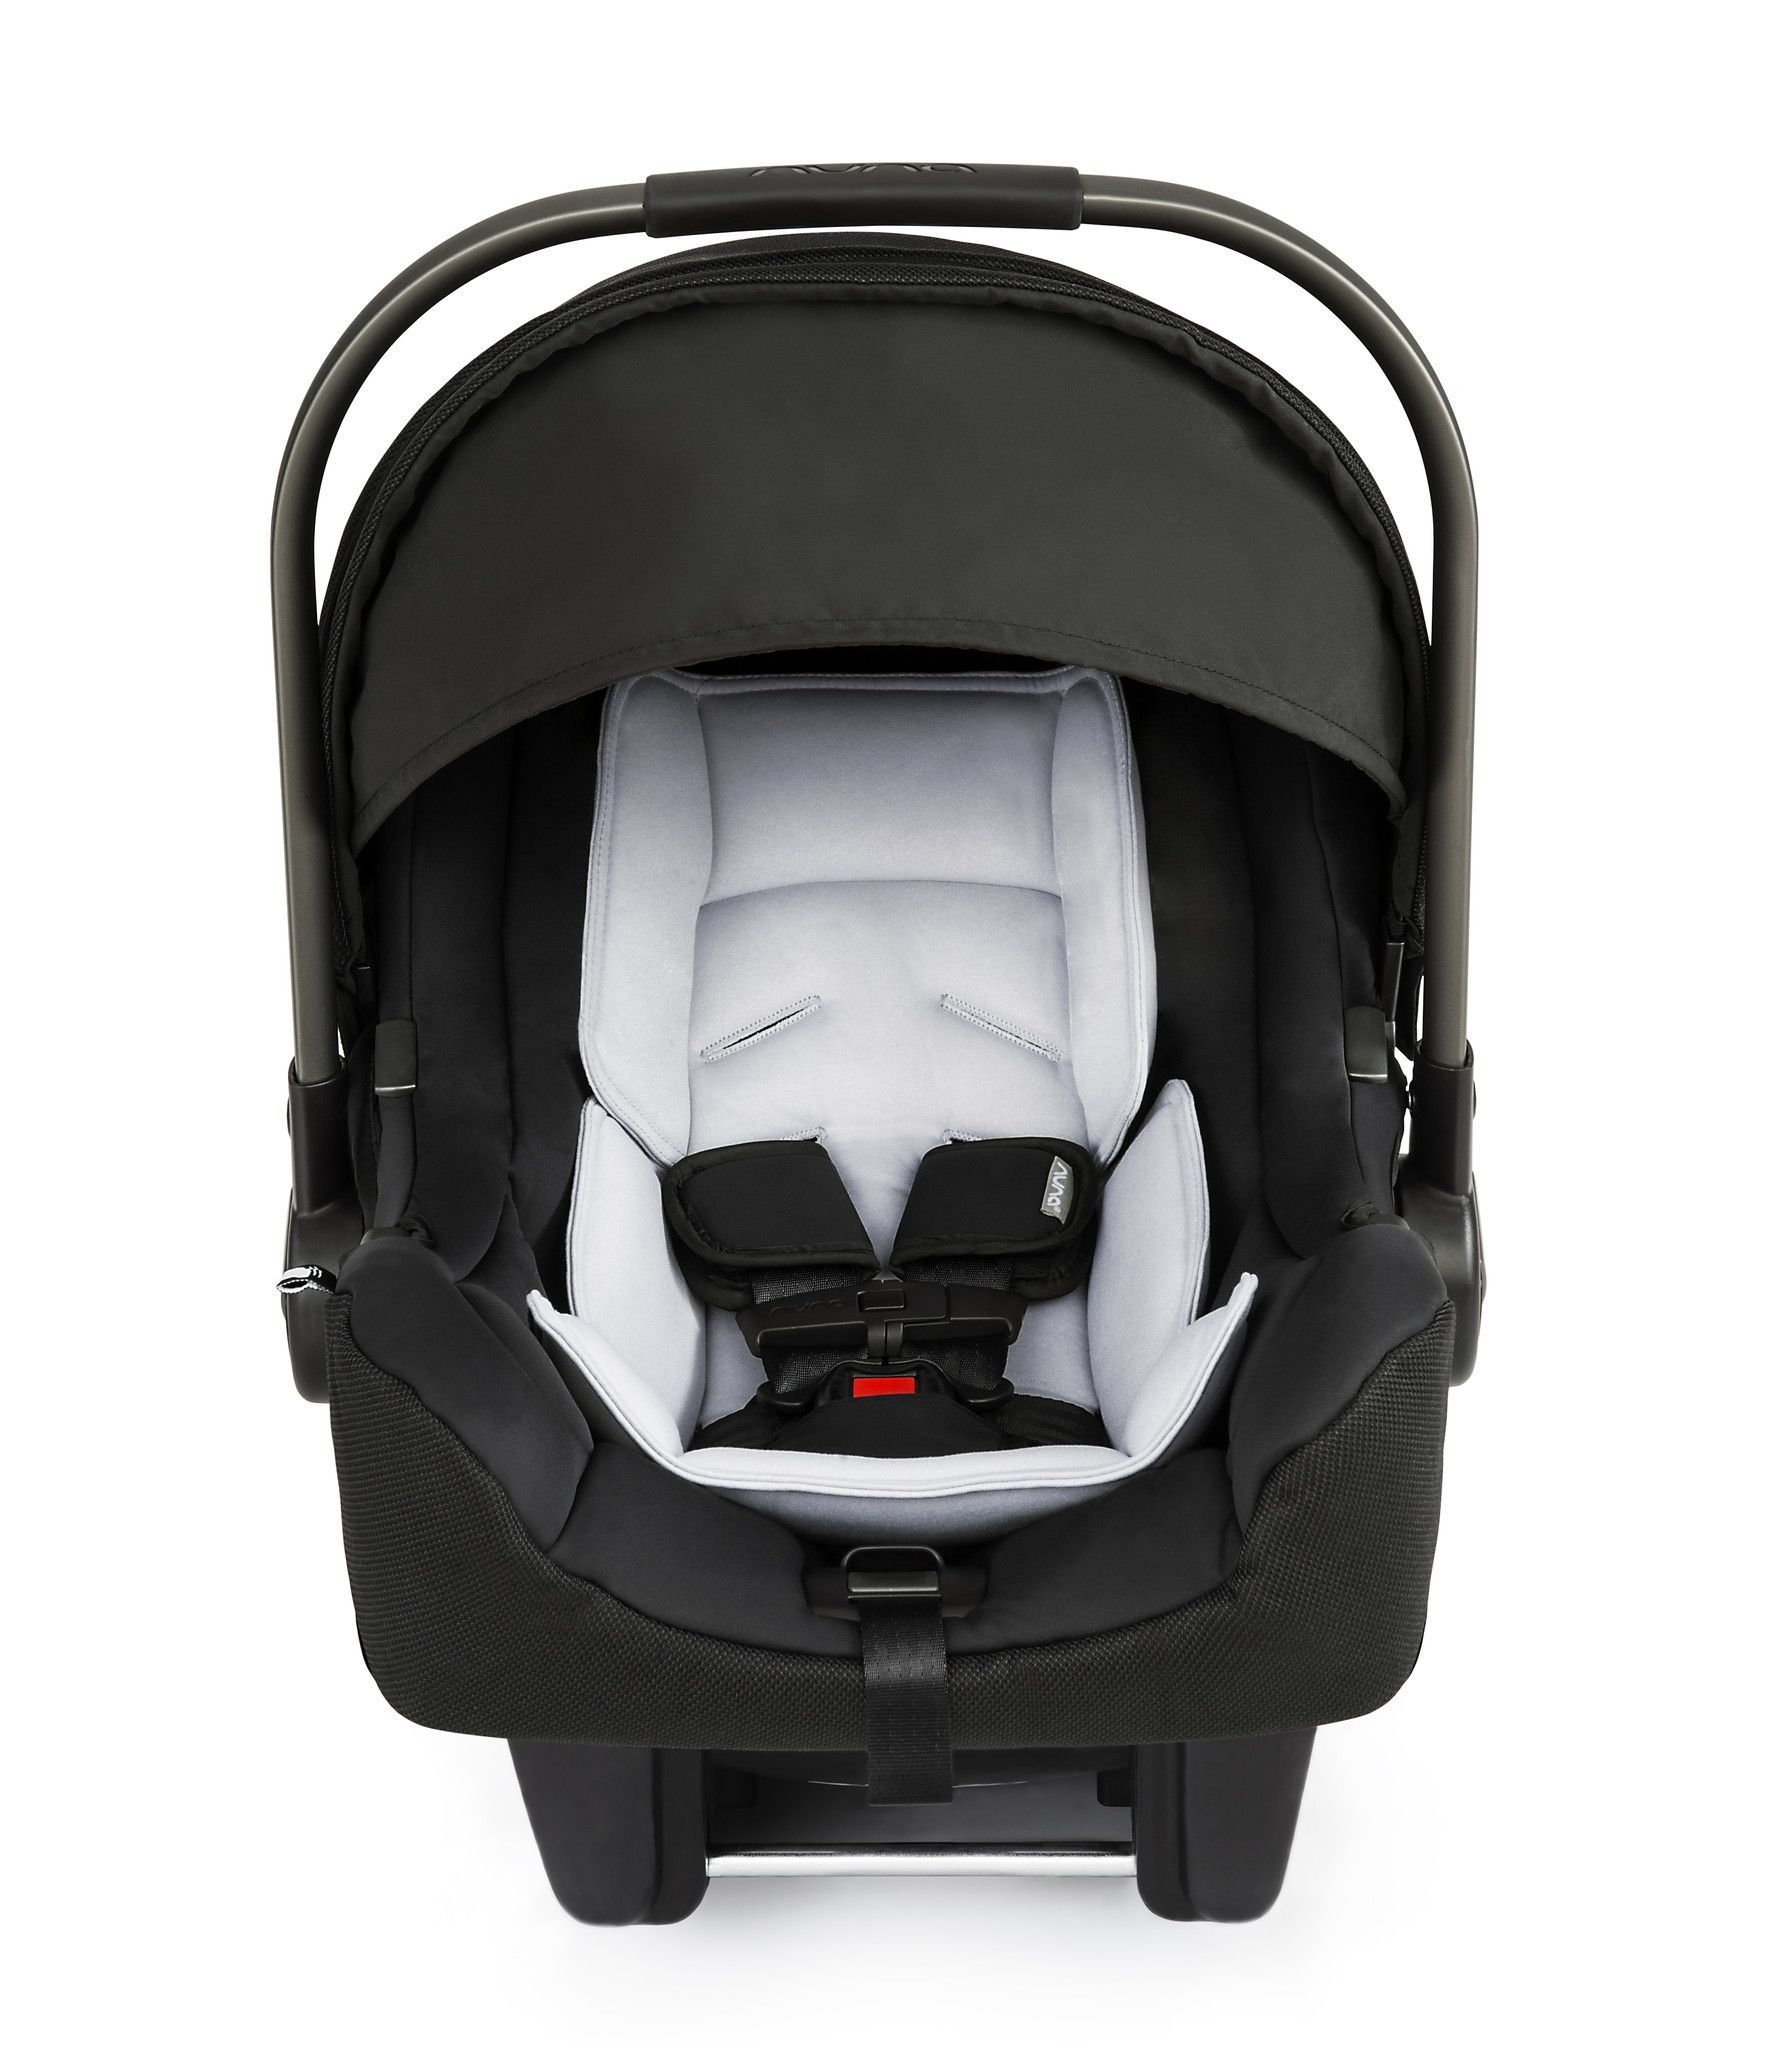 Quick Glance Features Safety And Style Collide In One Memorable Car Seat The Nuna Pipa Infant Is A Slim